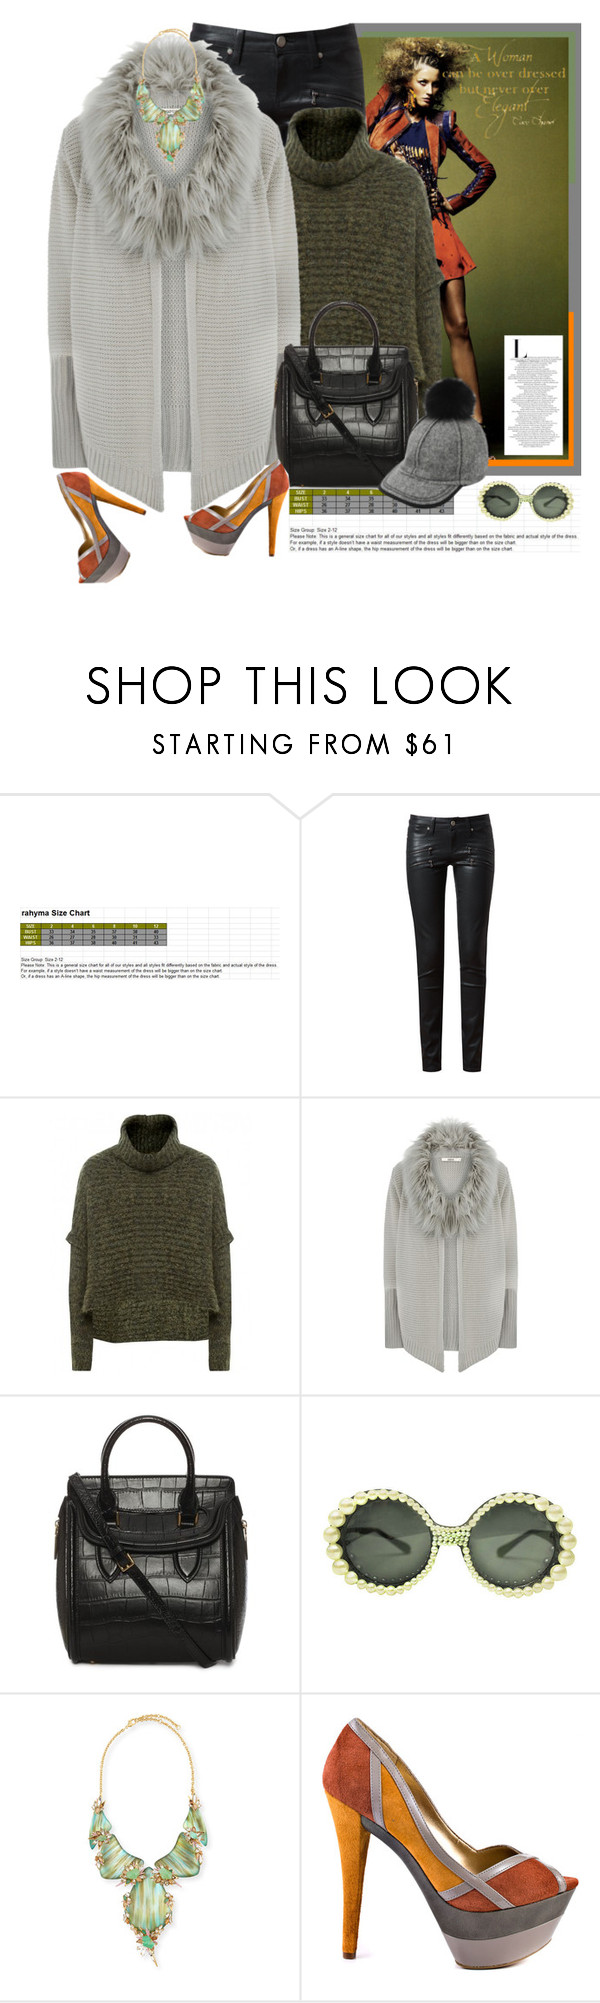 """whistle while you work"" by holjon2110 ❤ liked on Polyvore featuring Paige Denim, Sarah Pacini, Oasis, Alexander McQueen, Lola, Alexis Bittar, Jessica Simpson and Chanel"